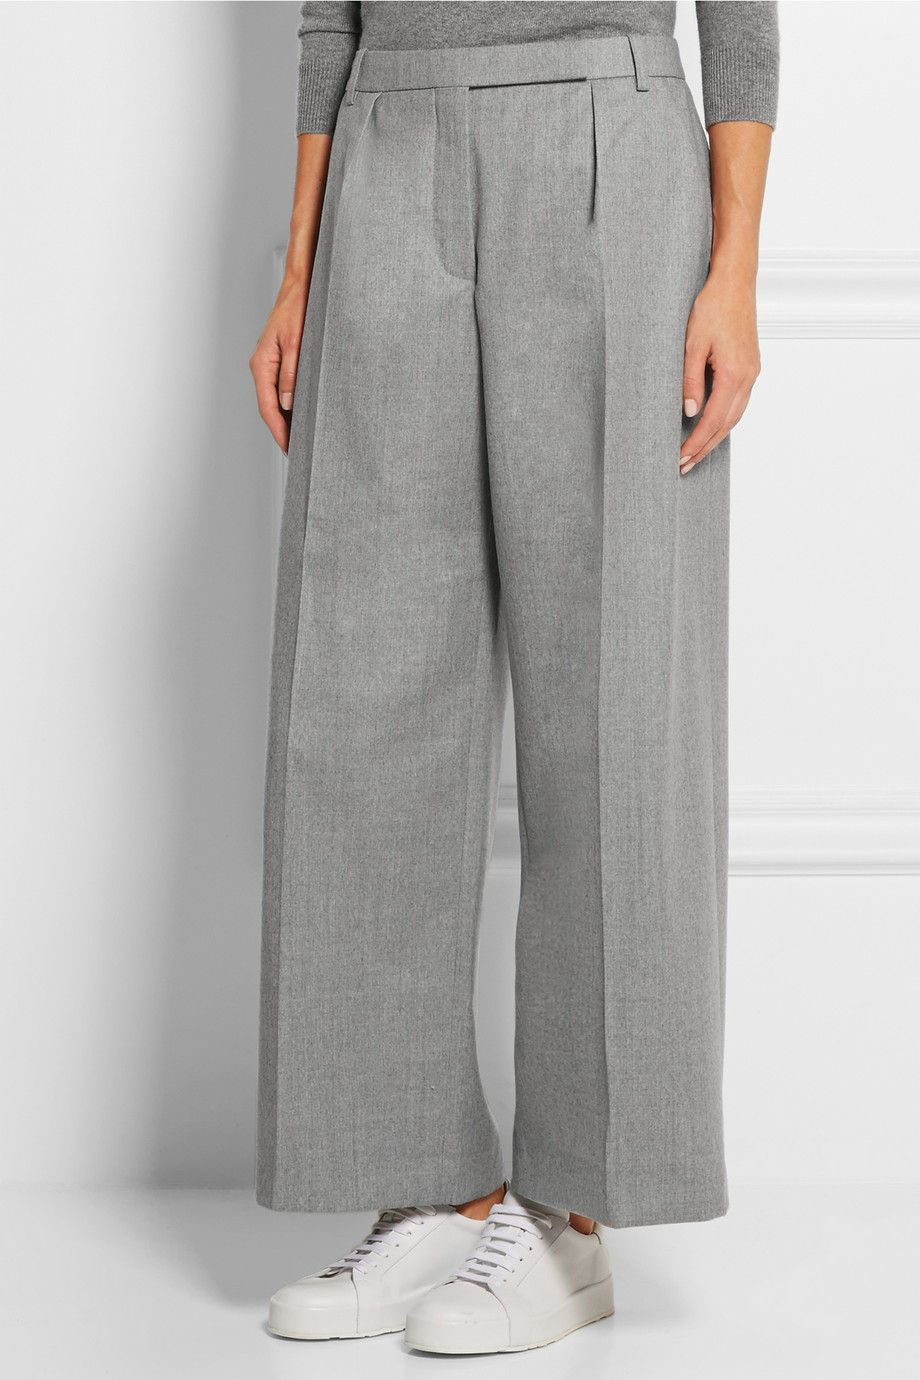 wide leg trousers - Black Carven Free Shipping Hot Sale iofUrf